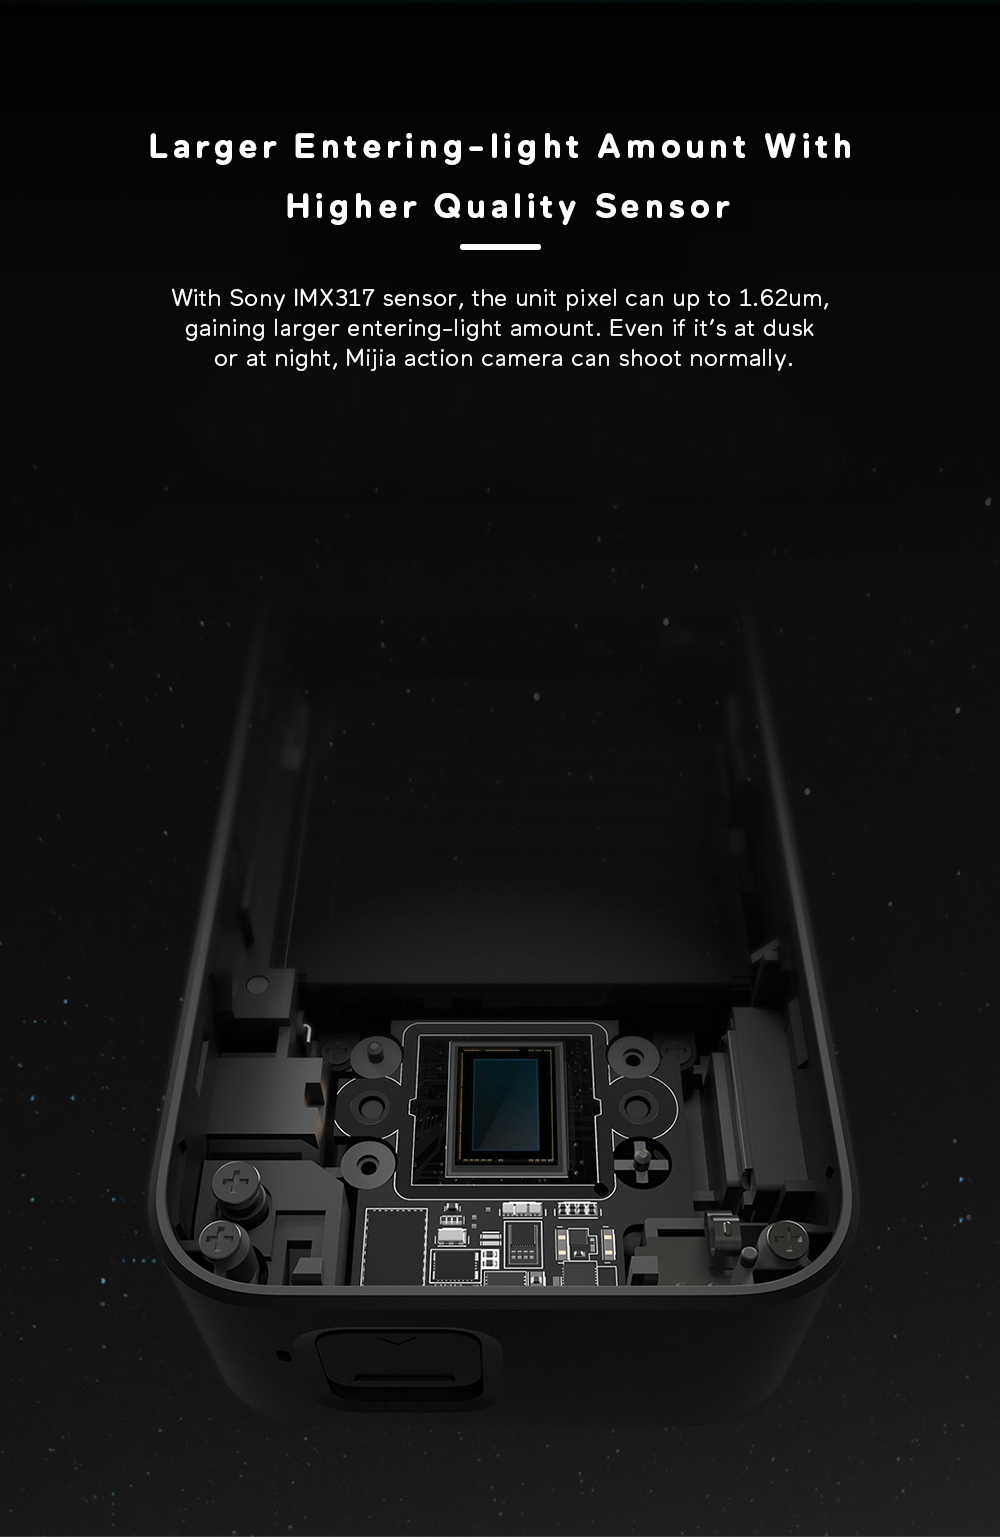 Xiaomi Mijia 4K Ambarella A12S75 Sony IMX317 2,4 - crna - image Xiaomi-Camera-Mijia-4K-Action-Camera-20170824175013998 on https://smartmall.hr